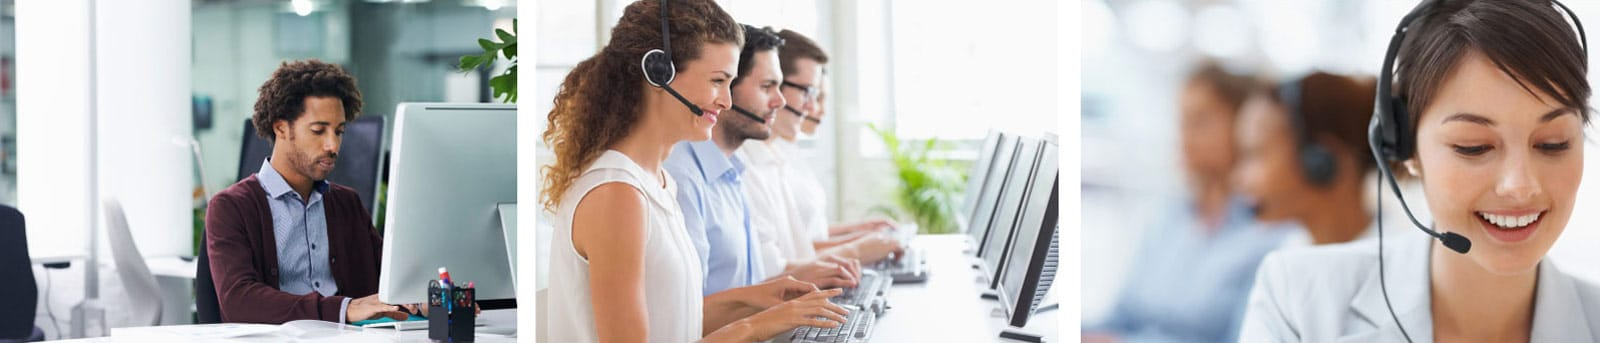 Real-Time Communication Fully Engaged Customer Service